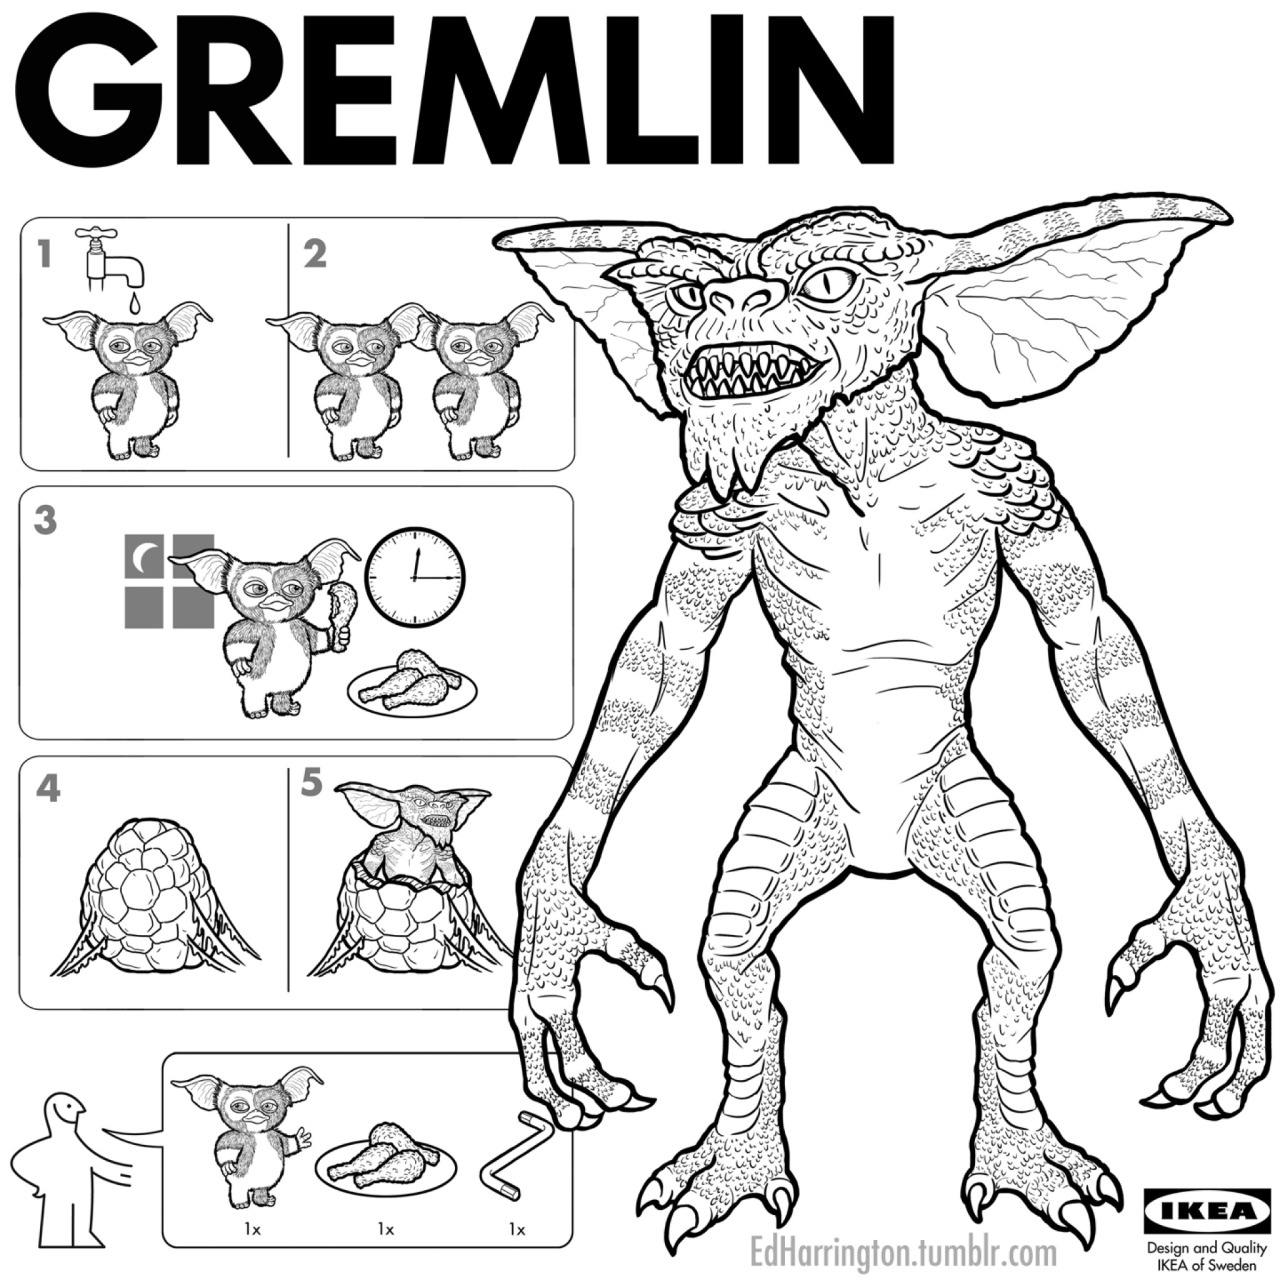 Gremlins The Novel The Review